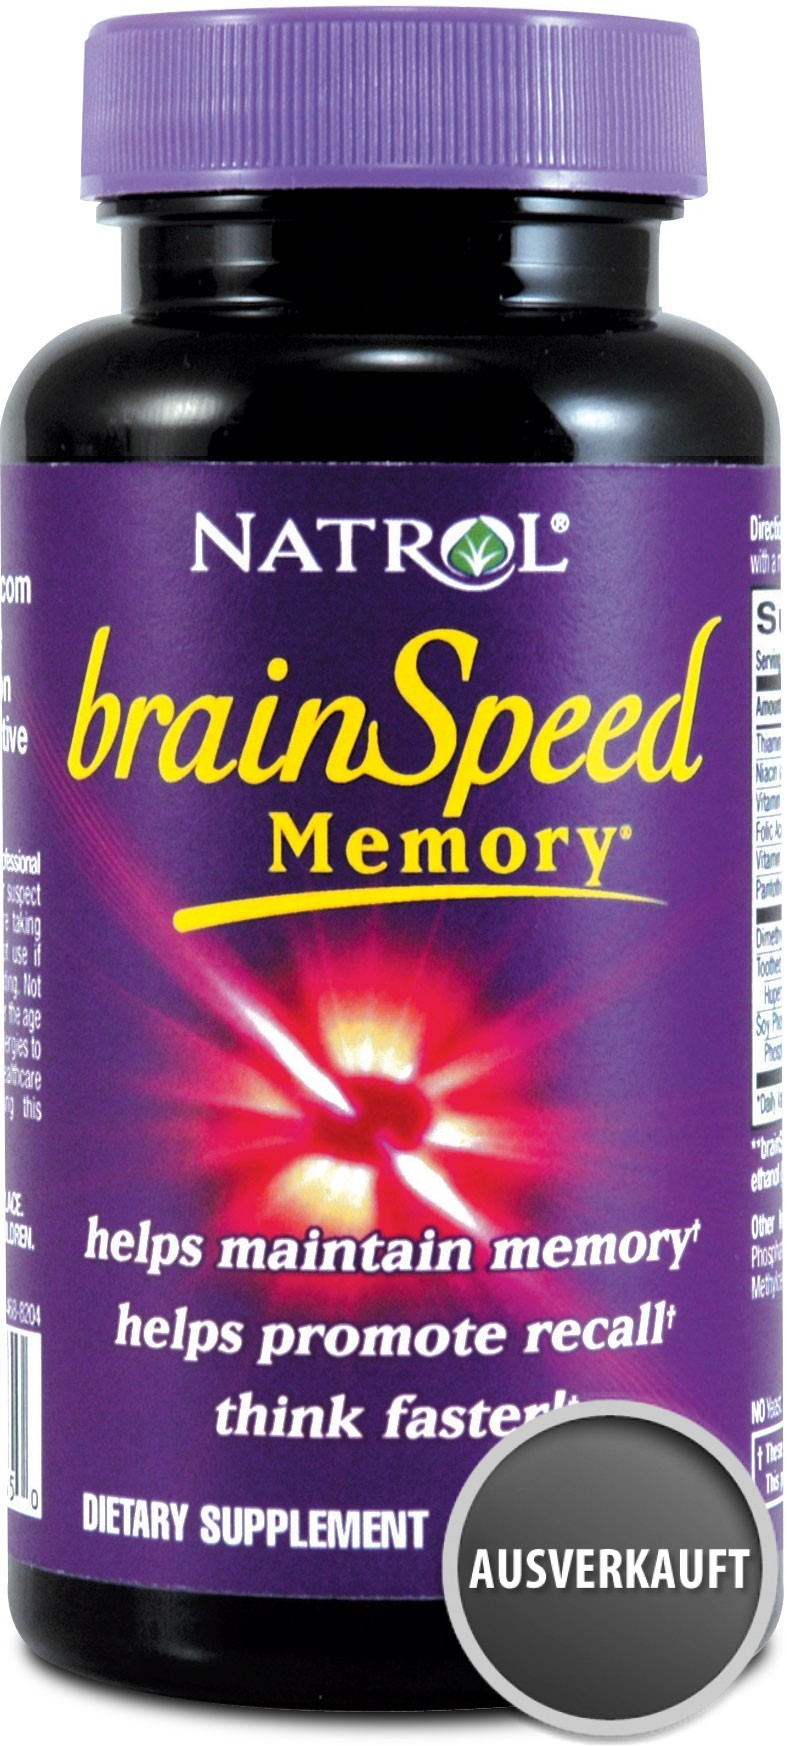 Natrol Brain Speed Memory